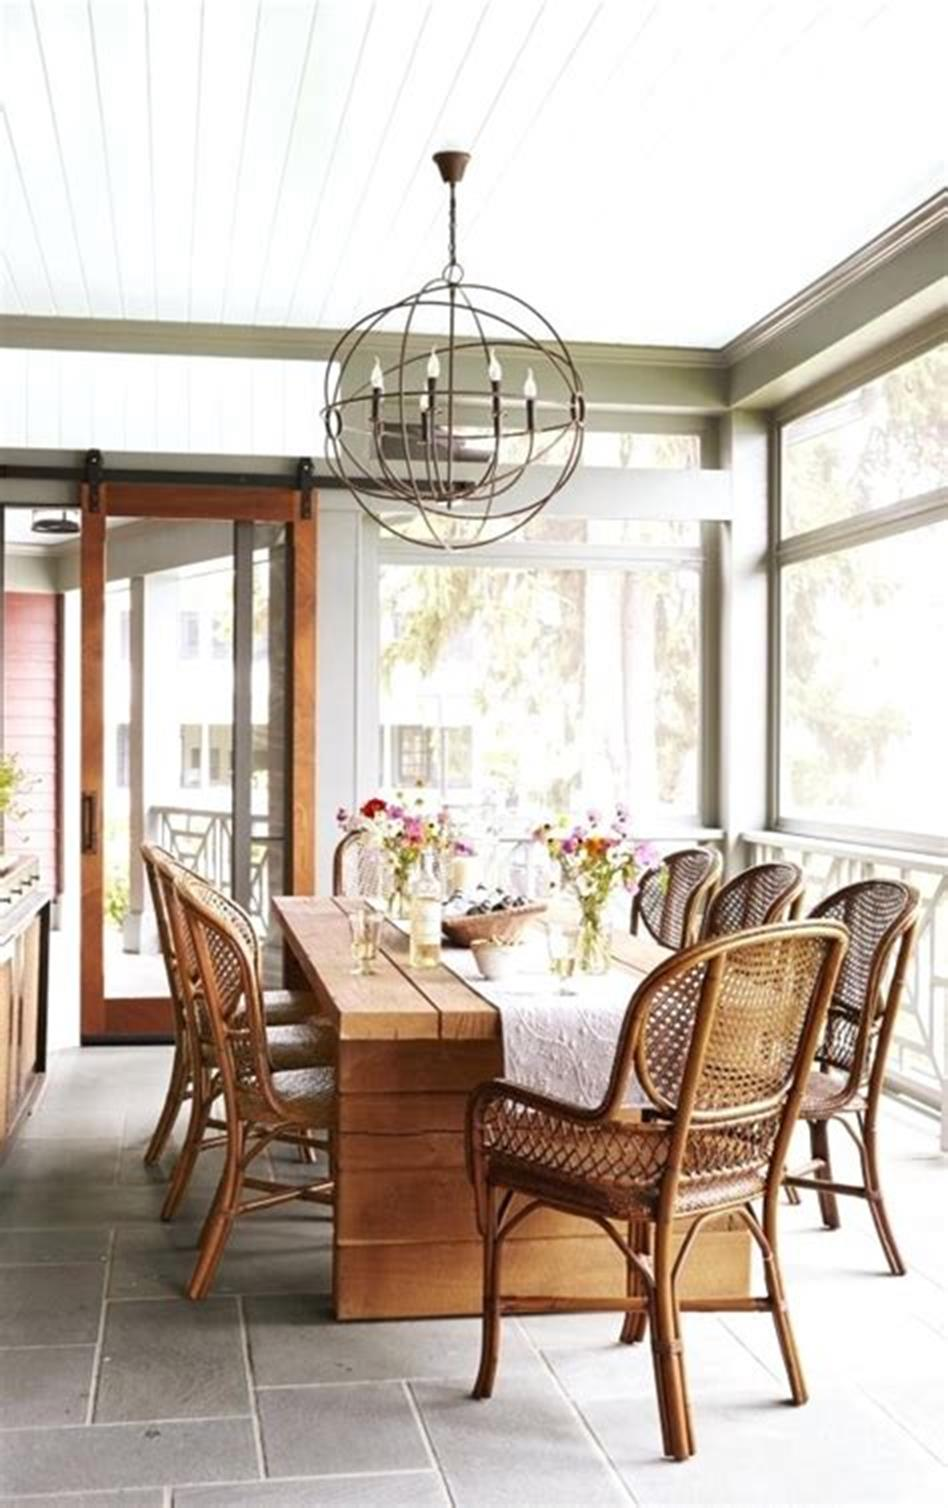 50 Most Popular Affordable Sunroom Design Ideas on a Budget 22